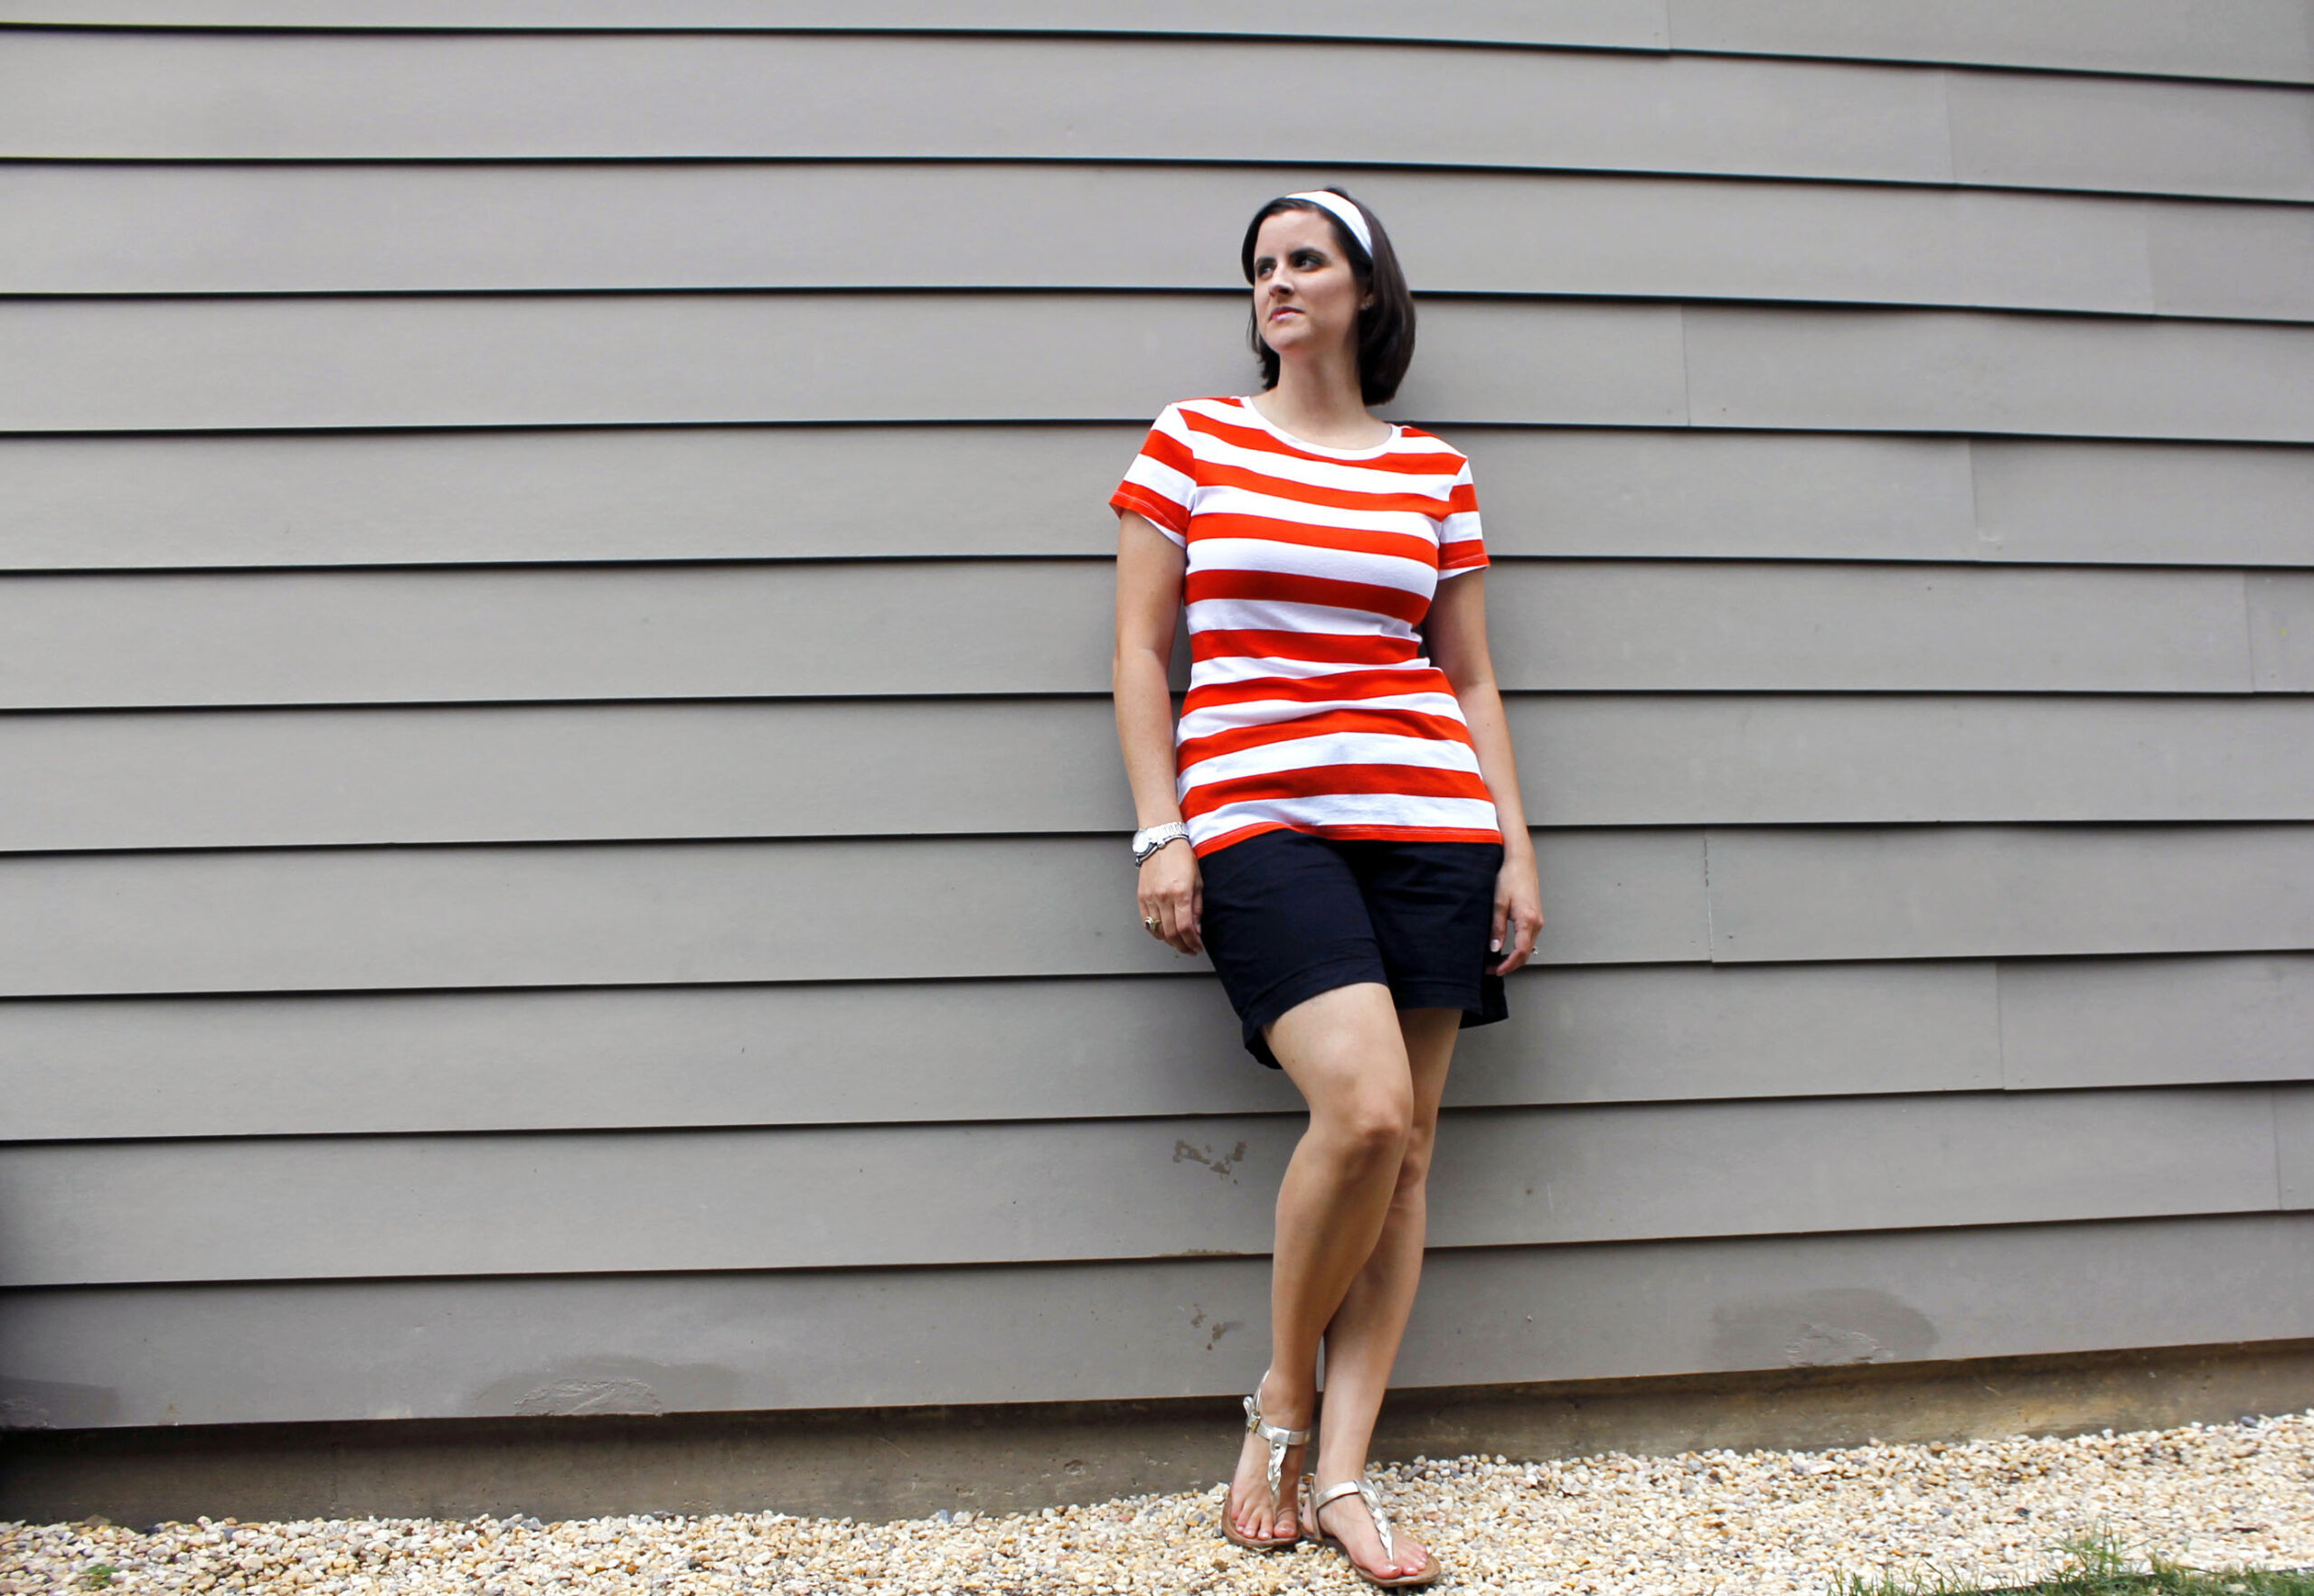 Woman dressed in Nemo Disneybound outfit